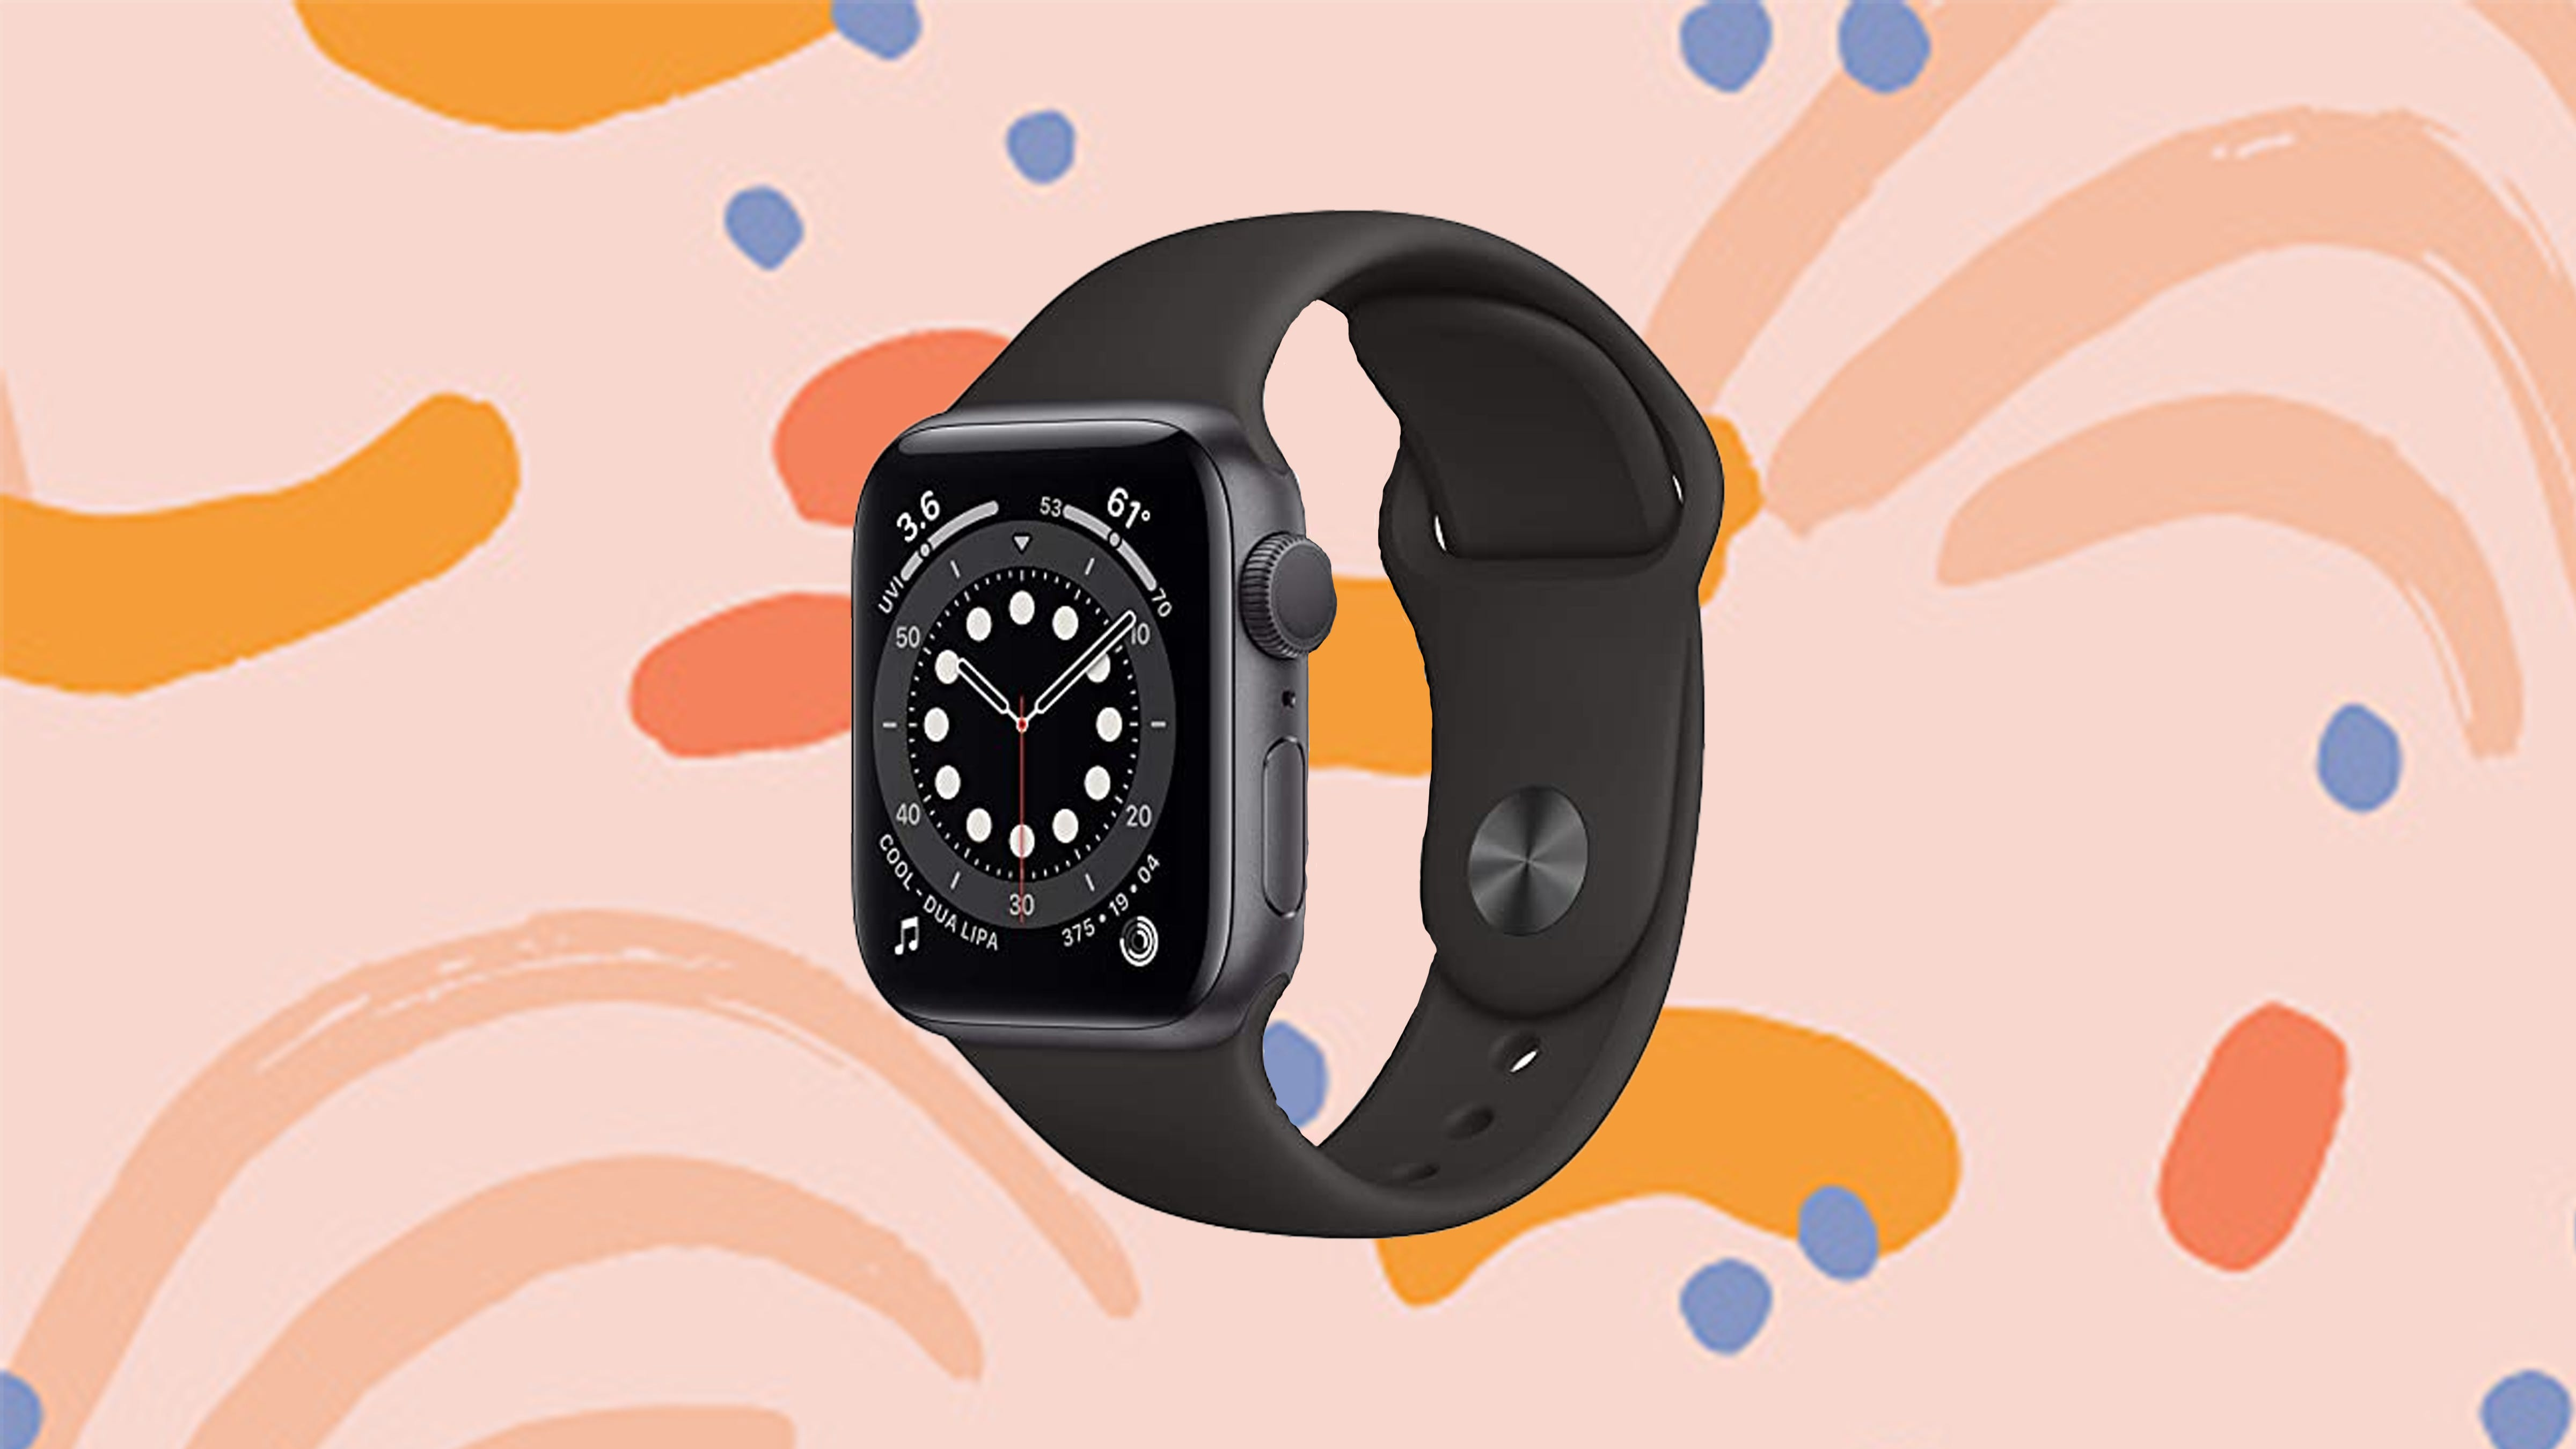 You can get the brand-new Apple Watch Series 6 on sale at Amazon right now